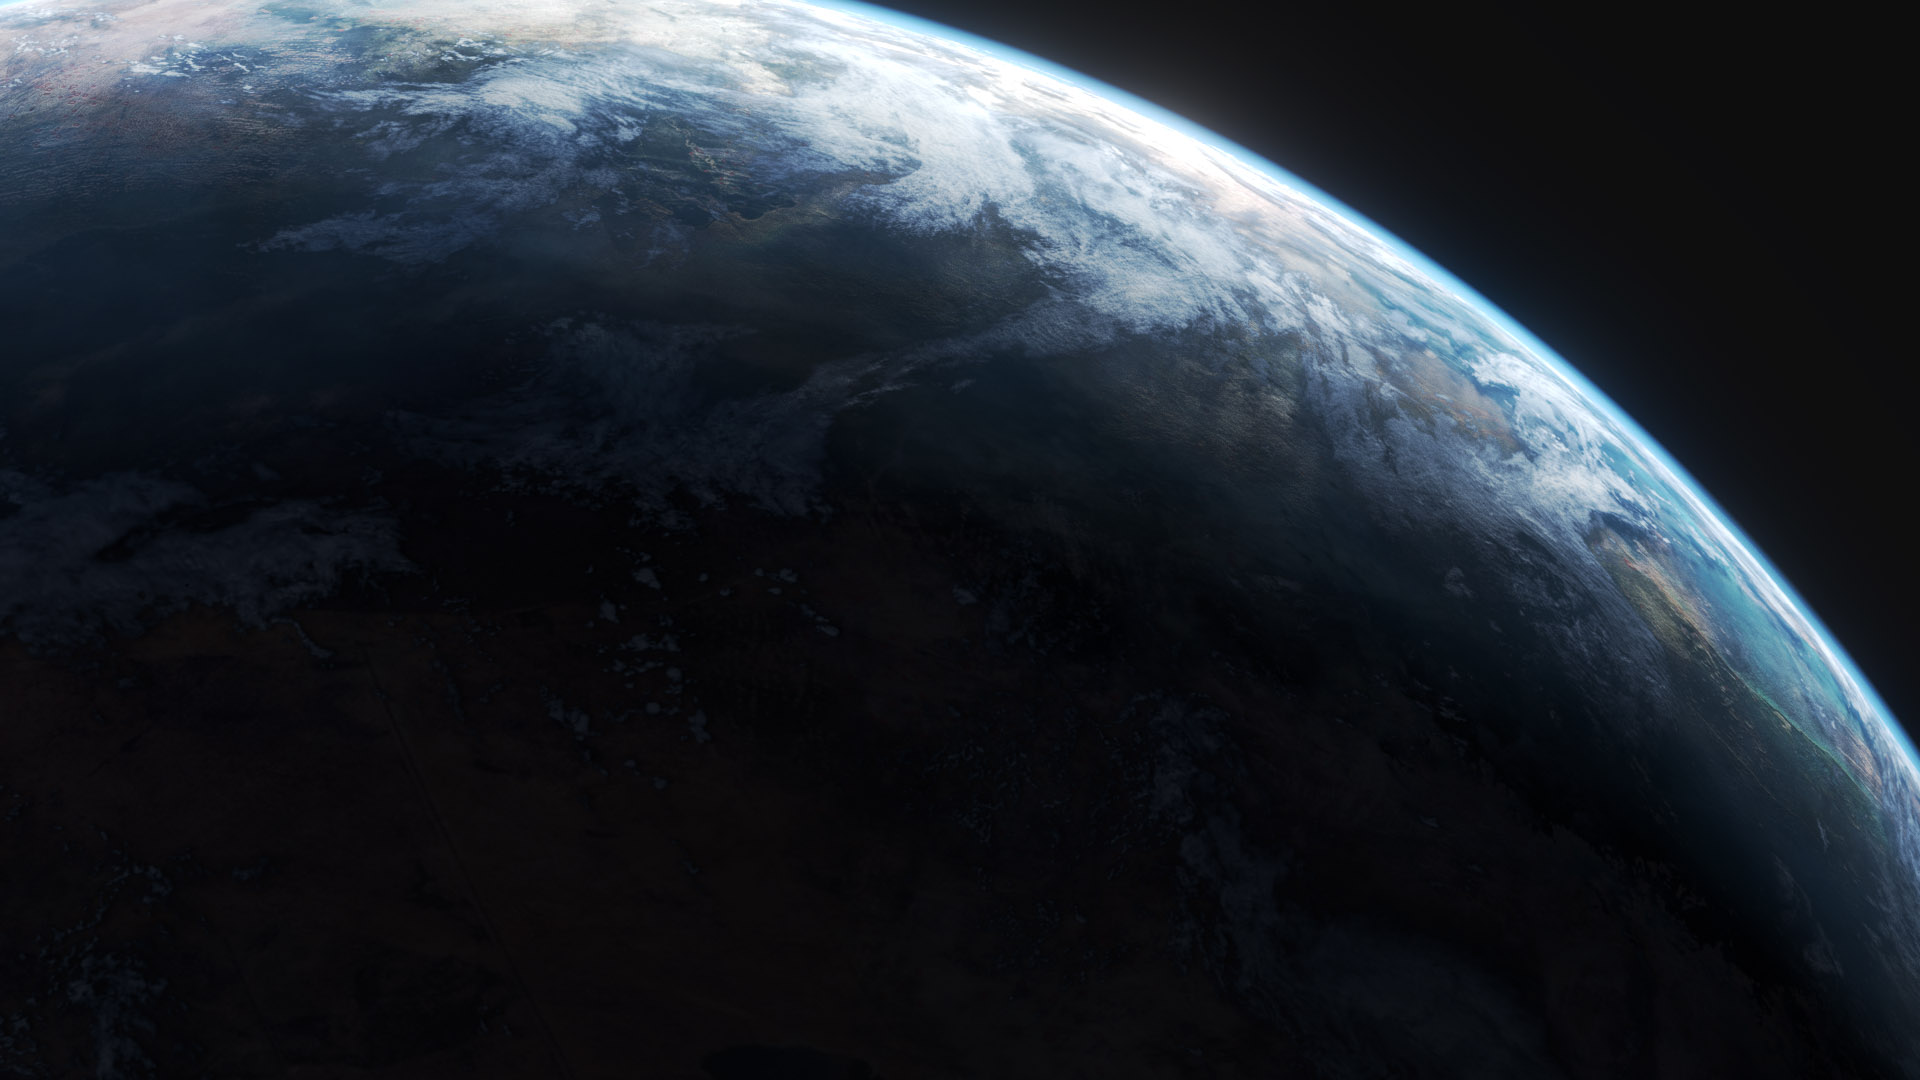 Space VFX Elements : The Ultimate Guide To Creating The Galaxy In Blender